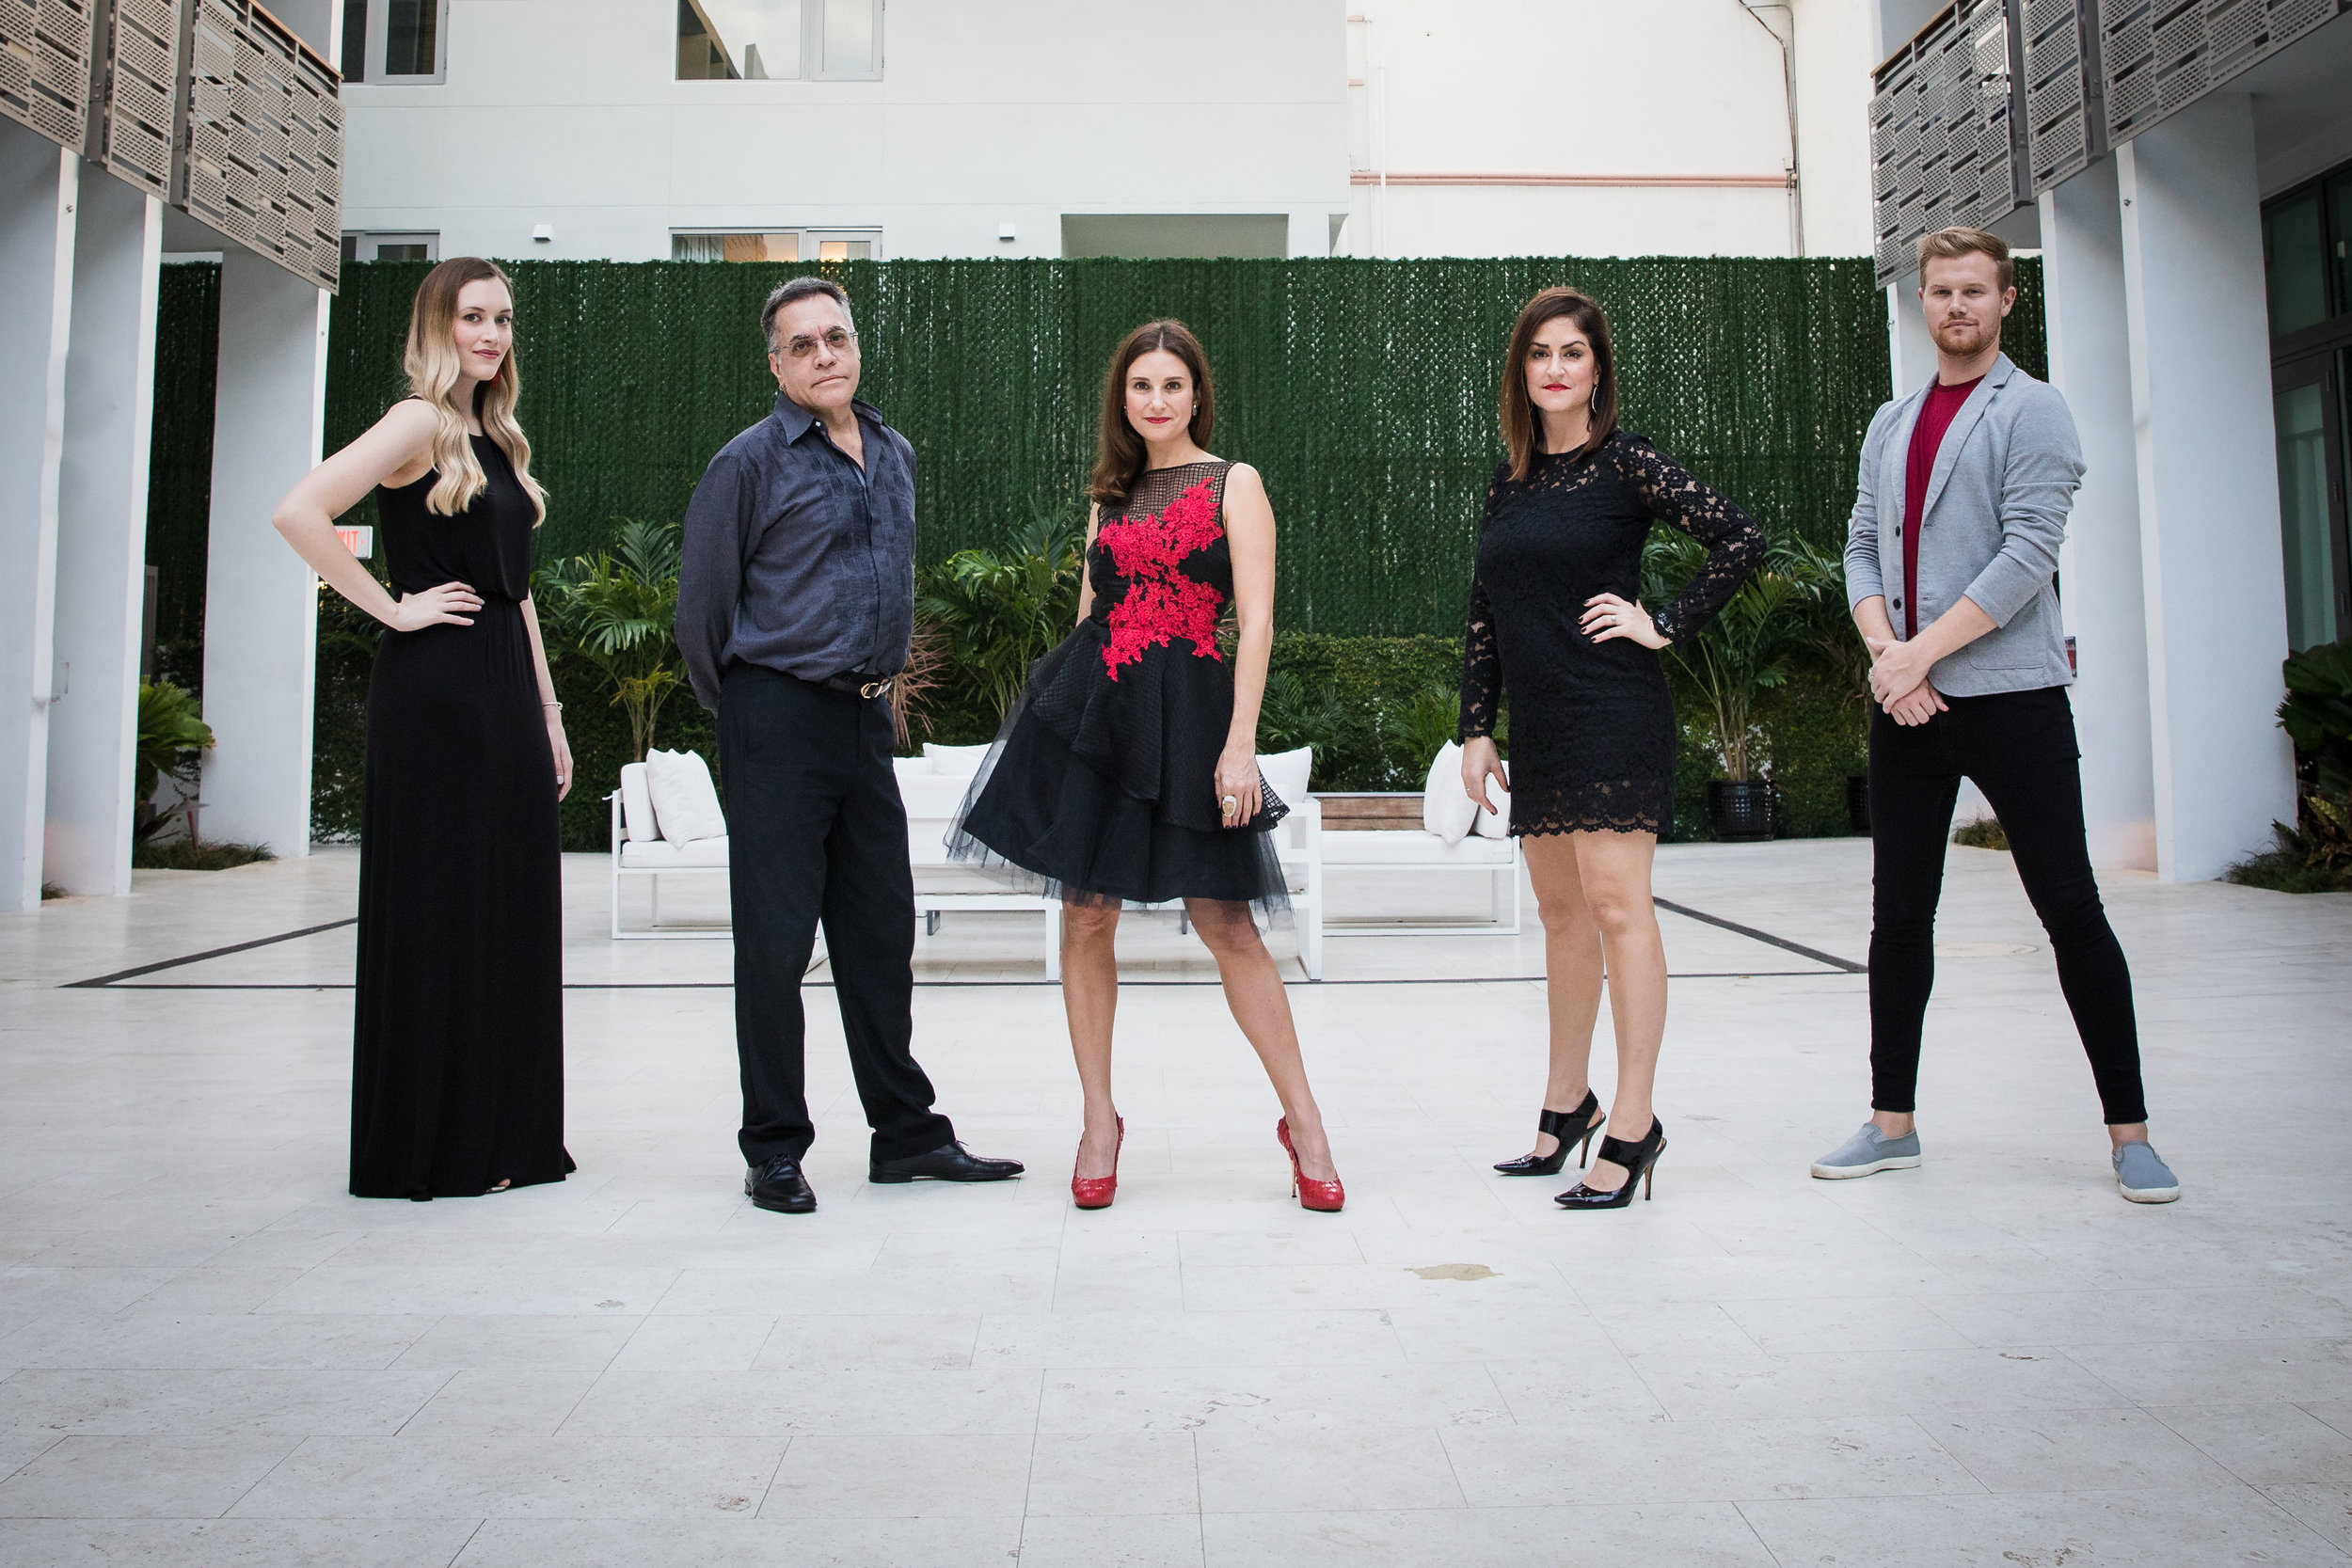 Left to Right: Valerie Nygren, Gilbert Valdivia, Andi Dyal, Carlyn Gilbert and Devin Seckfort.